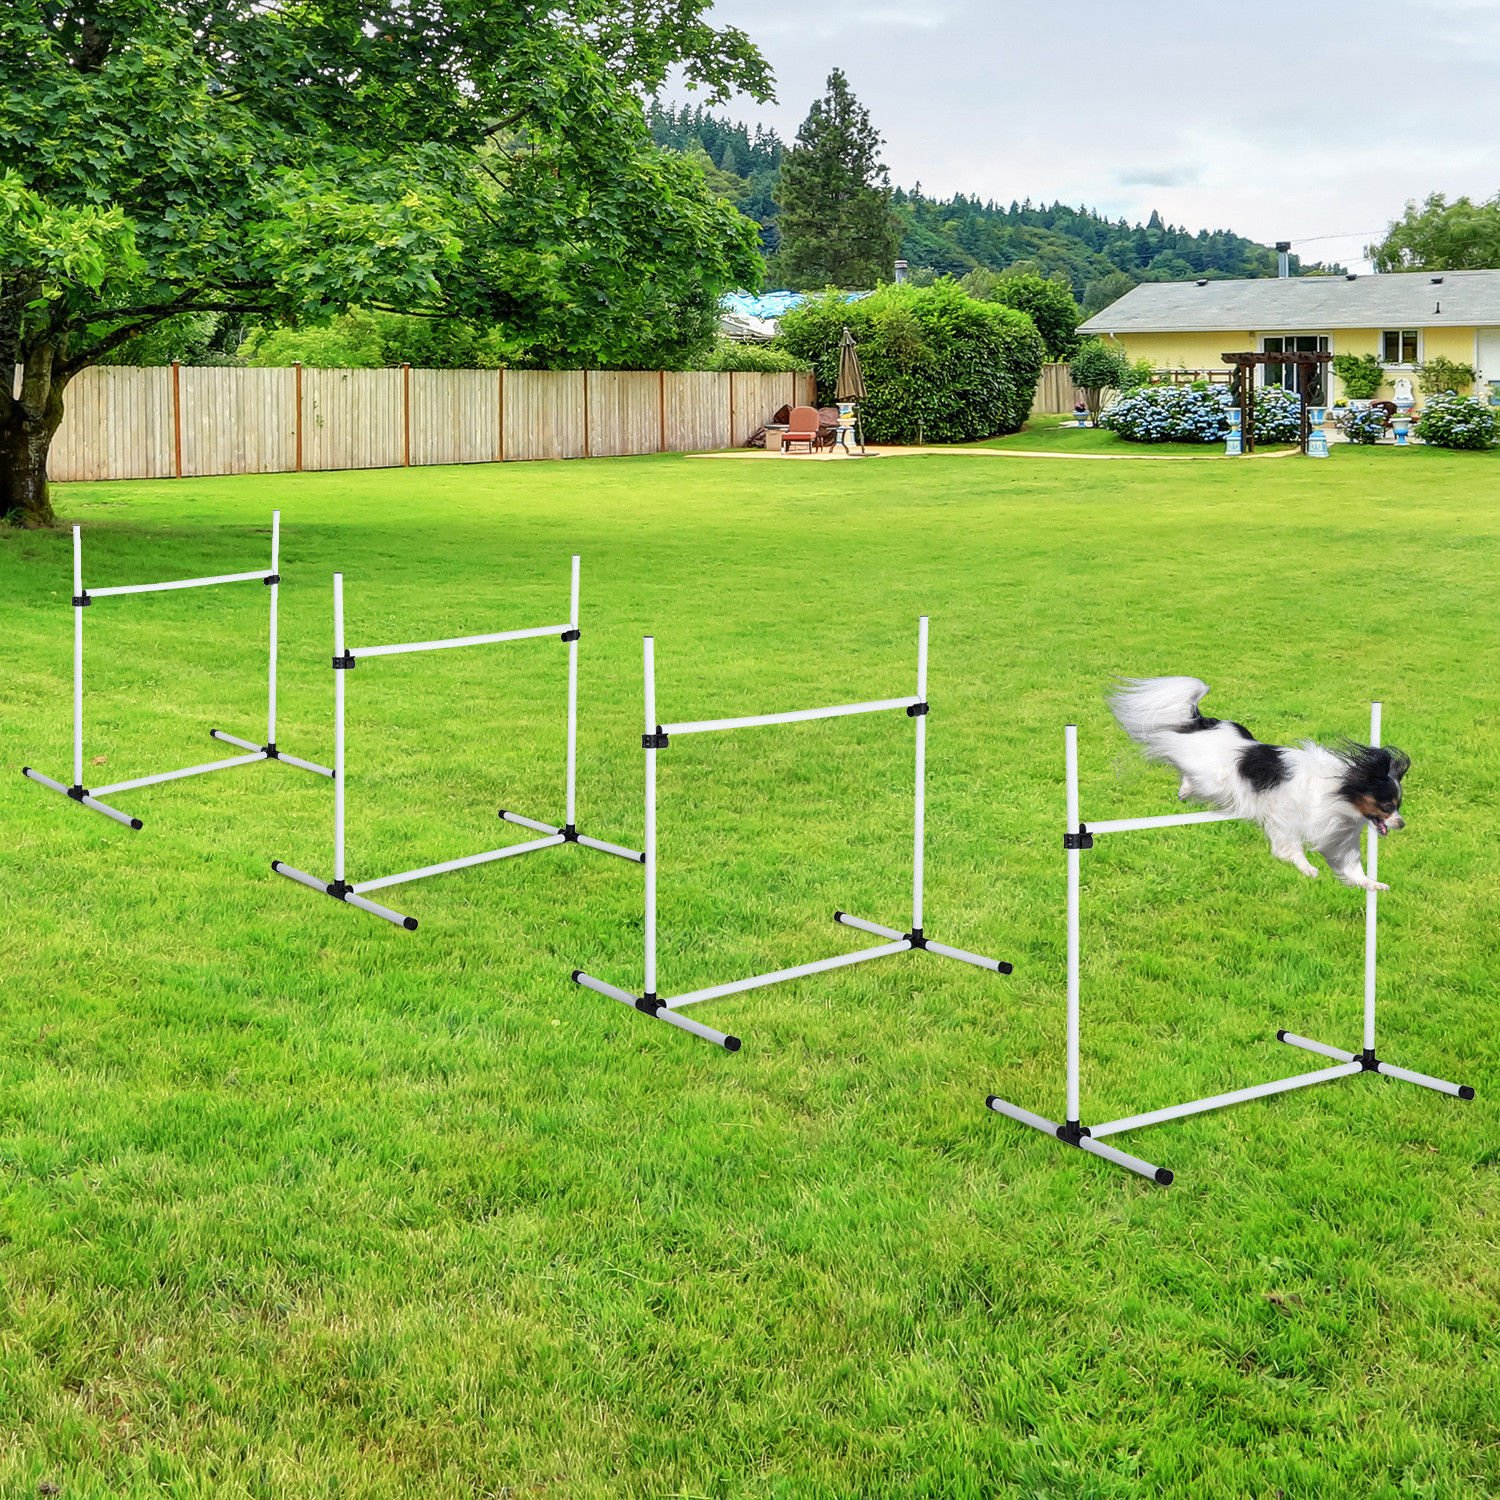 Generic t Dog A Training Equipment t Dog Agi Agility Jump 4PC Pet D 4PC Pet Dog y Jump Train Game Adjustable Exercise e Exercise Set Outdoor ble Exercise